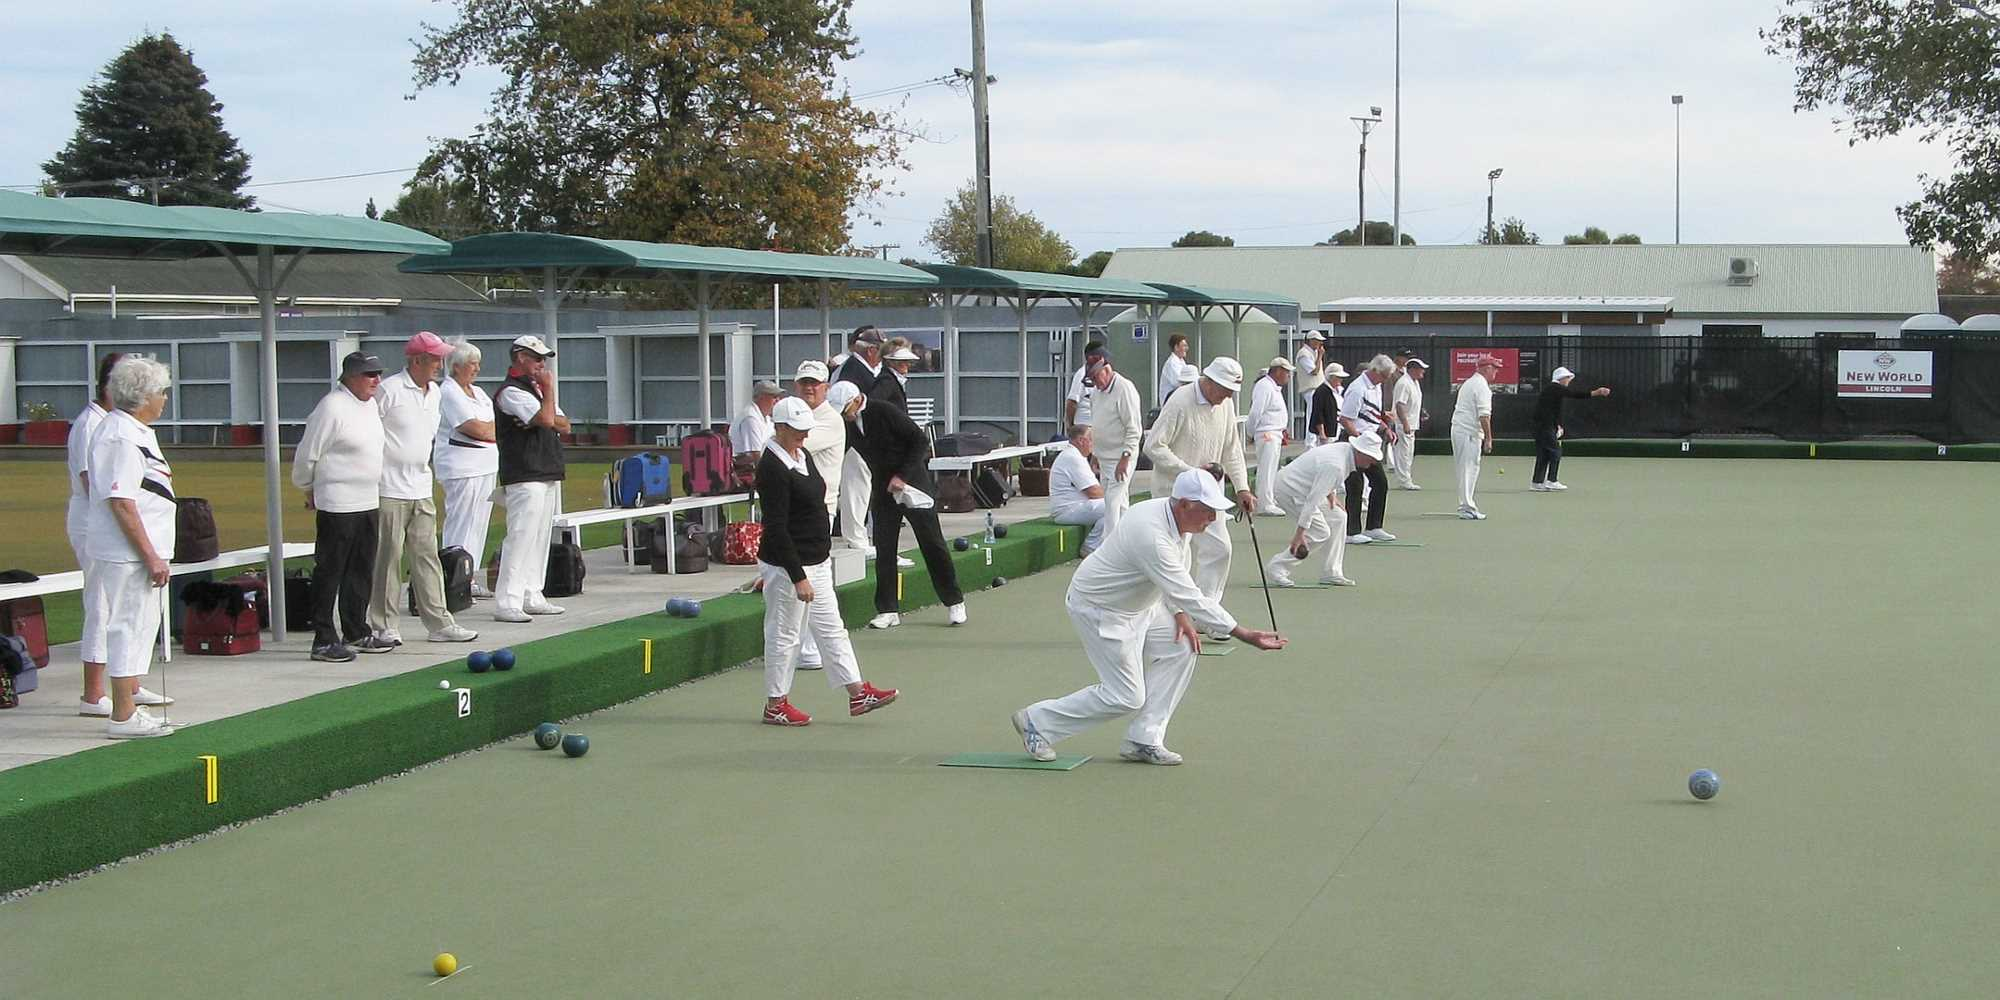 A Great Day for the Closing Day Match, Farmers v The Rest - 4 May